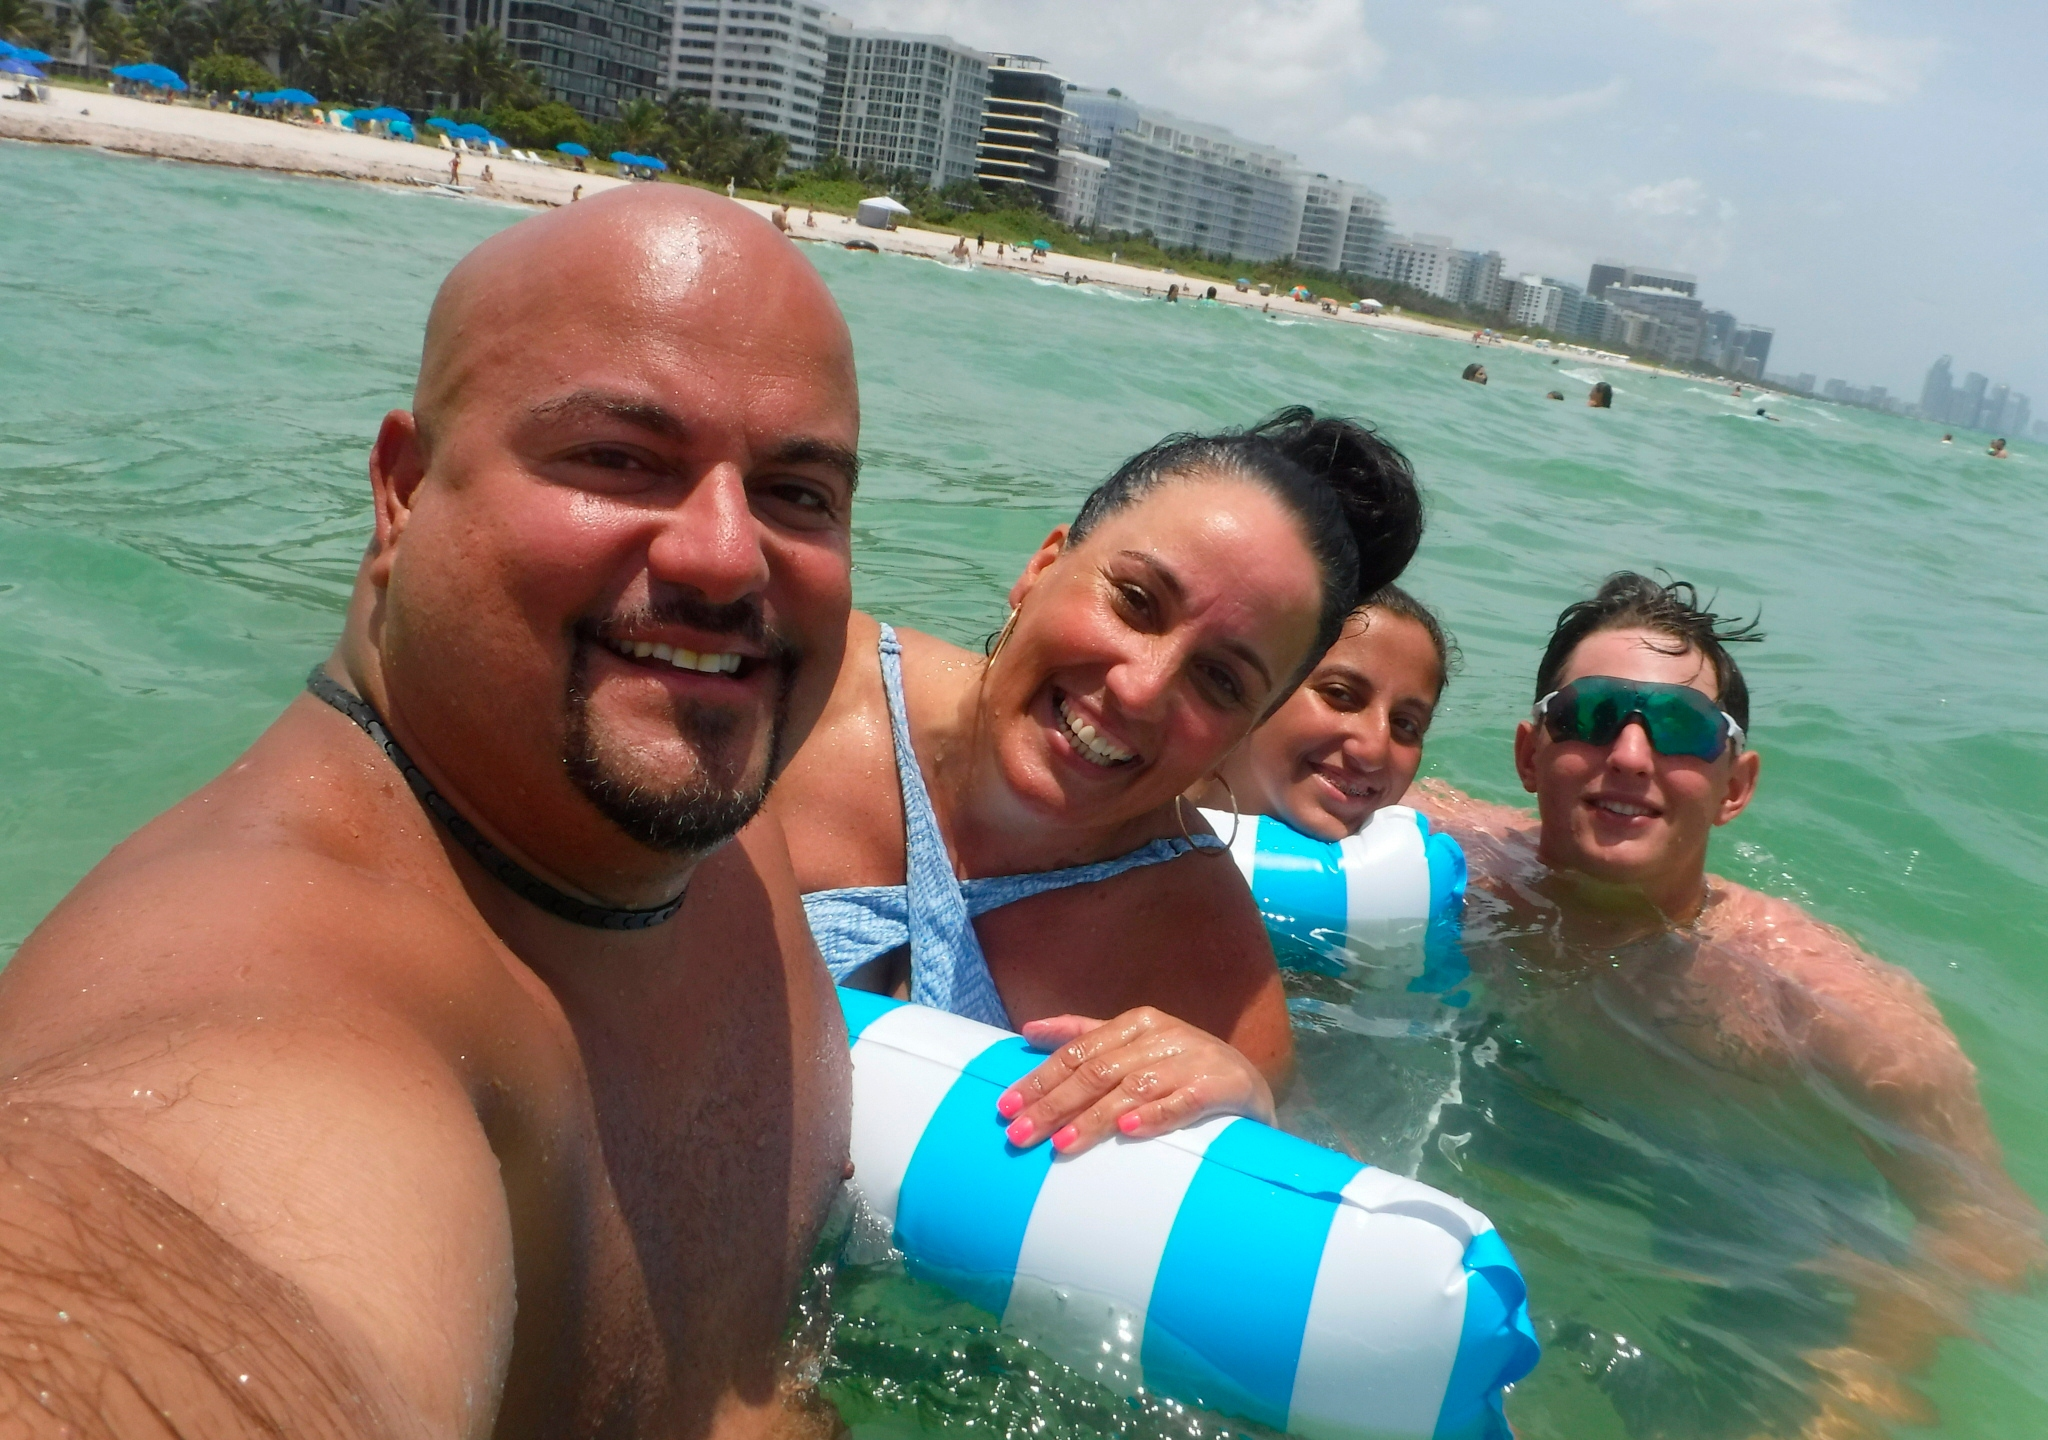 """This Wednesday, June 23, 2021, photo provided by Albert Aguero shows him, his wife, Janette; 14-year-old daughter, Athena, and 22-year-old son, Justin Willis, vacationing in the Miami area from New Jersey. They all were able to escape the building collapse of Champlain Towers South the following day. """"When I opened the staircase door and half the staircase was missing, at that point I know we're racing against time to all get out as a family,"""" Albert Aguero says. (Albert Aguero via AP)"""